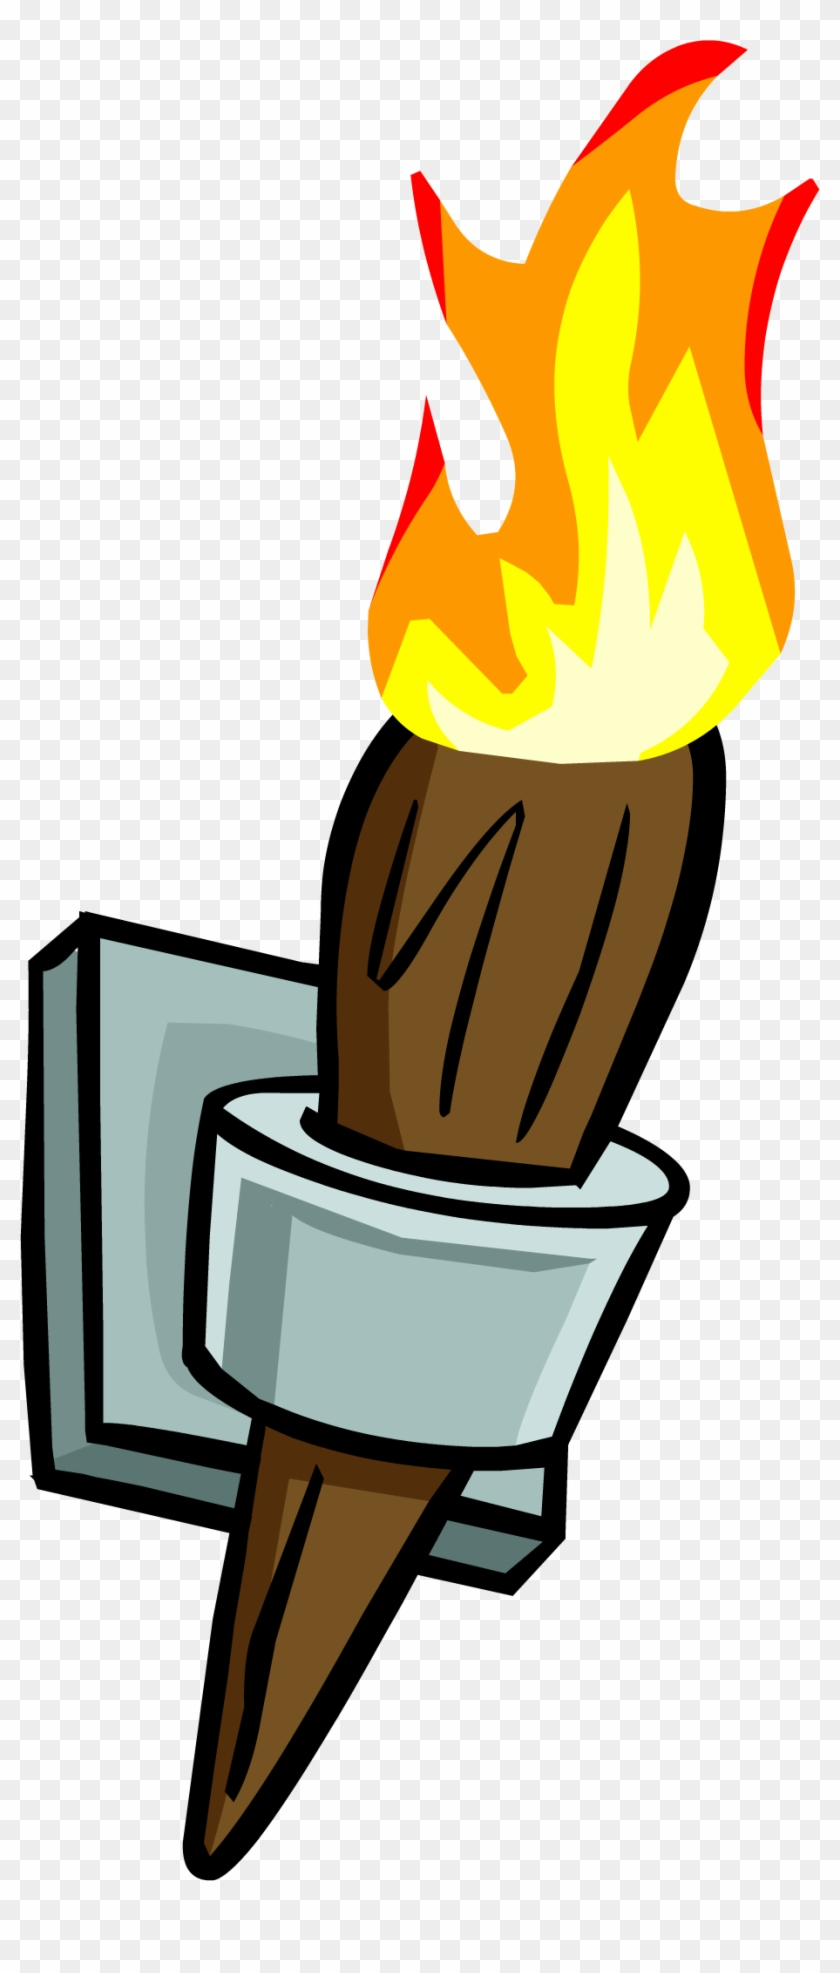 Wall Torch - Png - Club Penguin Torch #117834